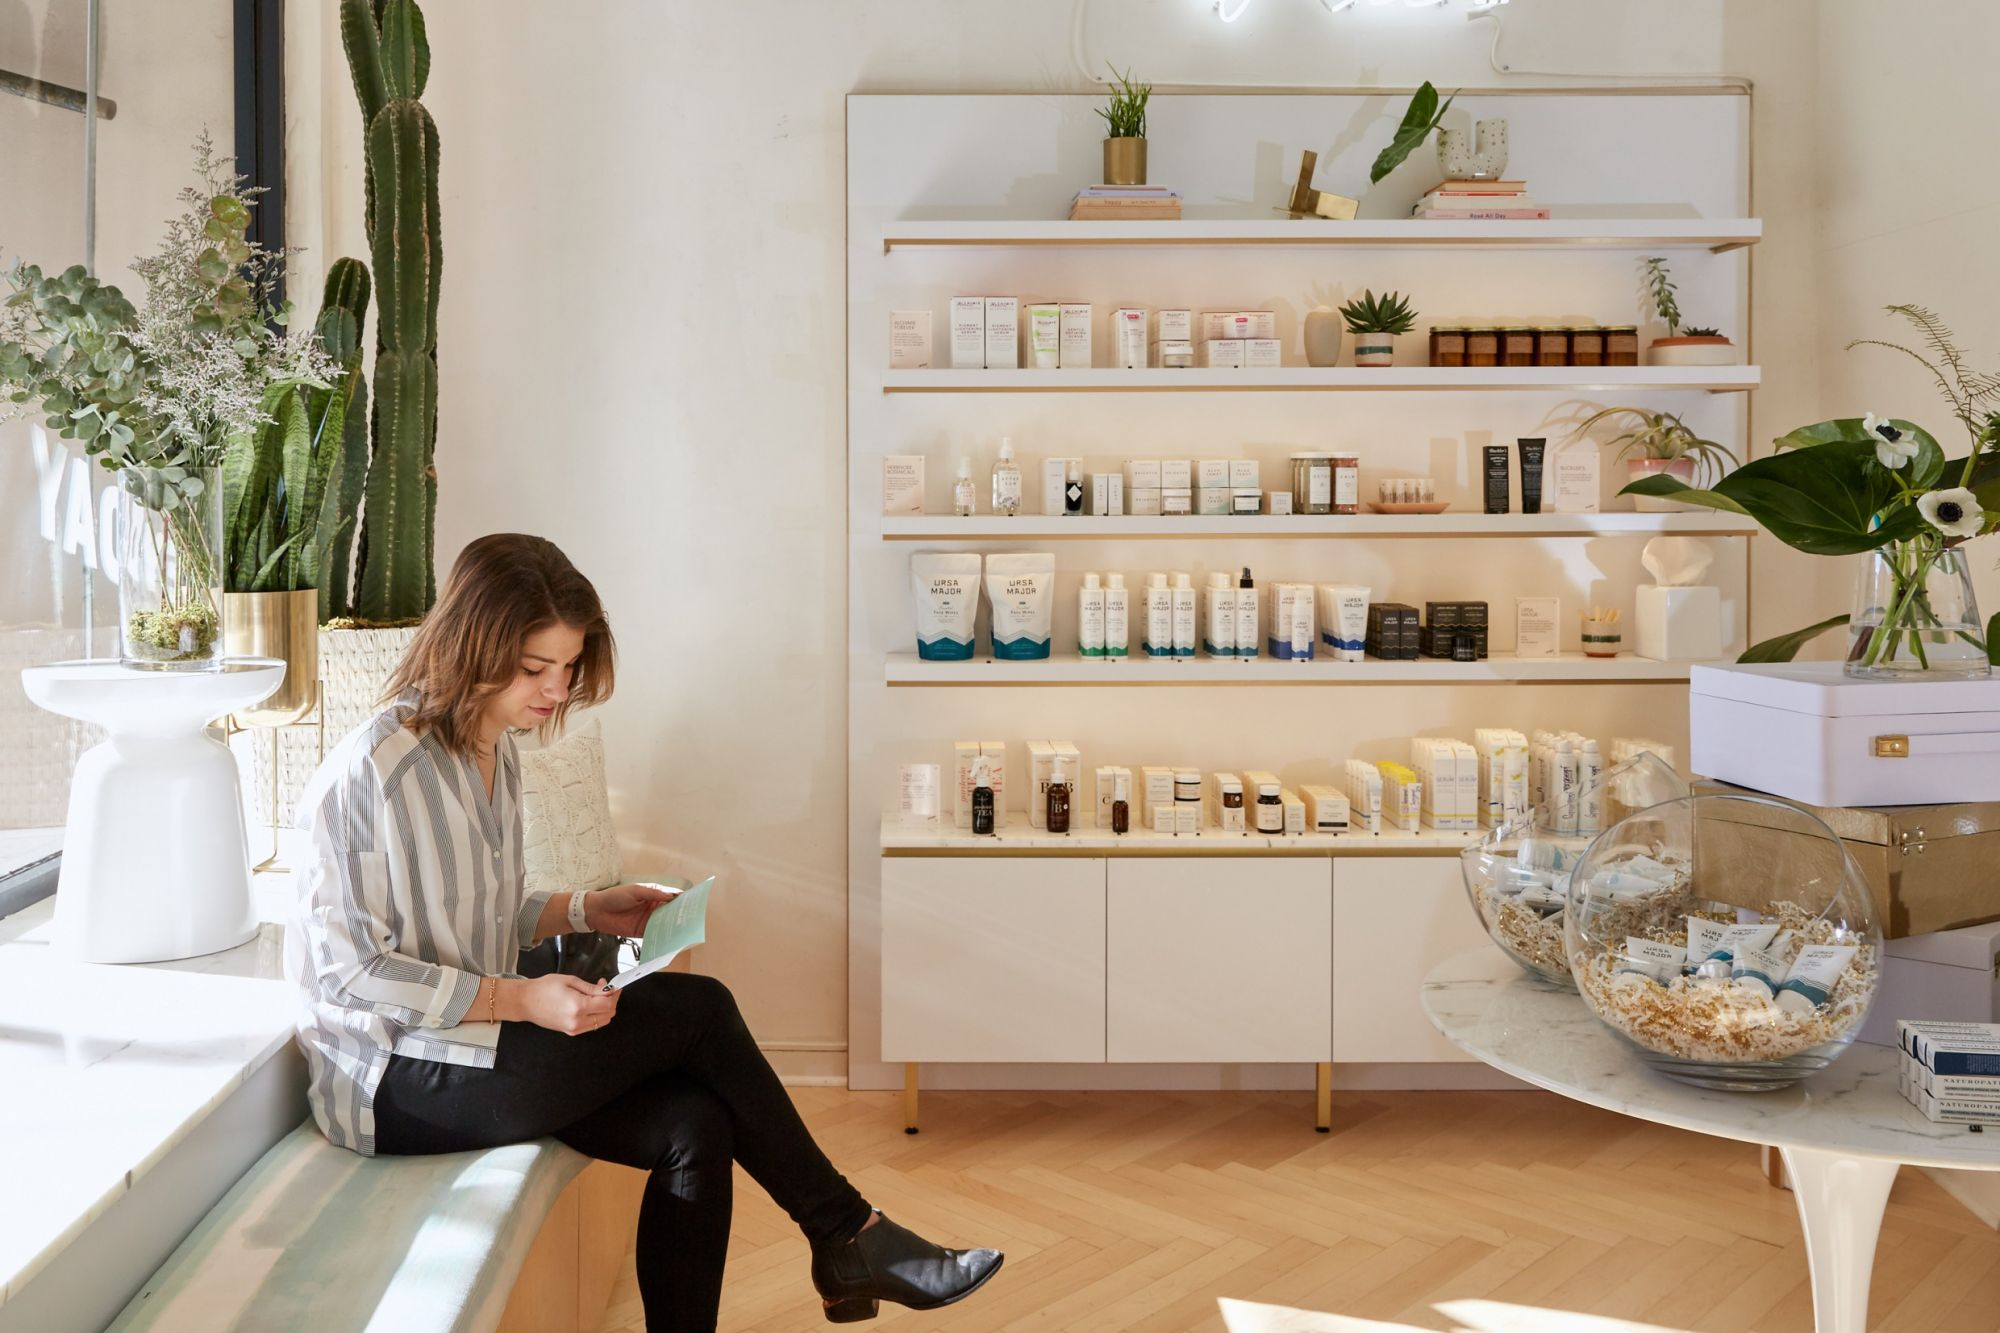 This Facial Shop Focused on Helping People Instead of Pushing Products -- and Raised $8 Million in the Process